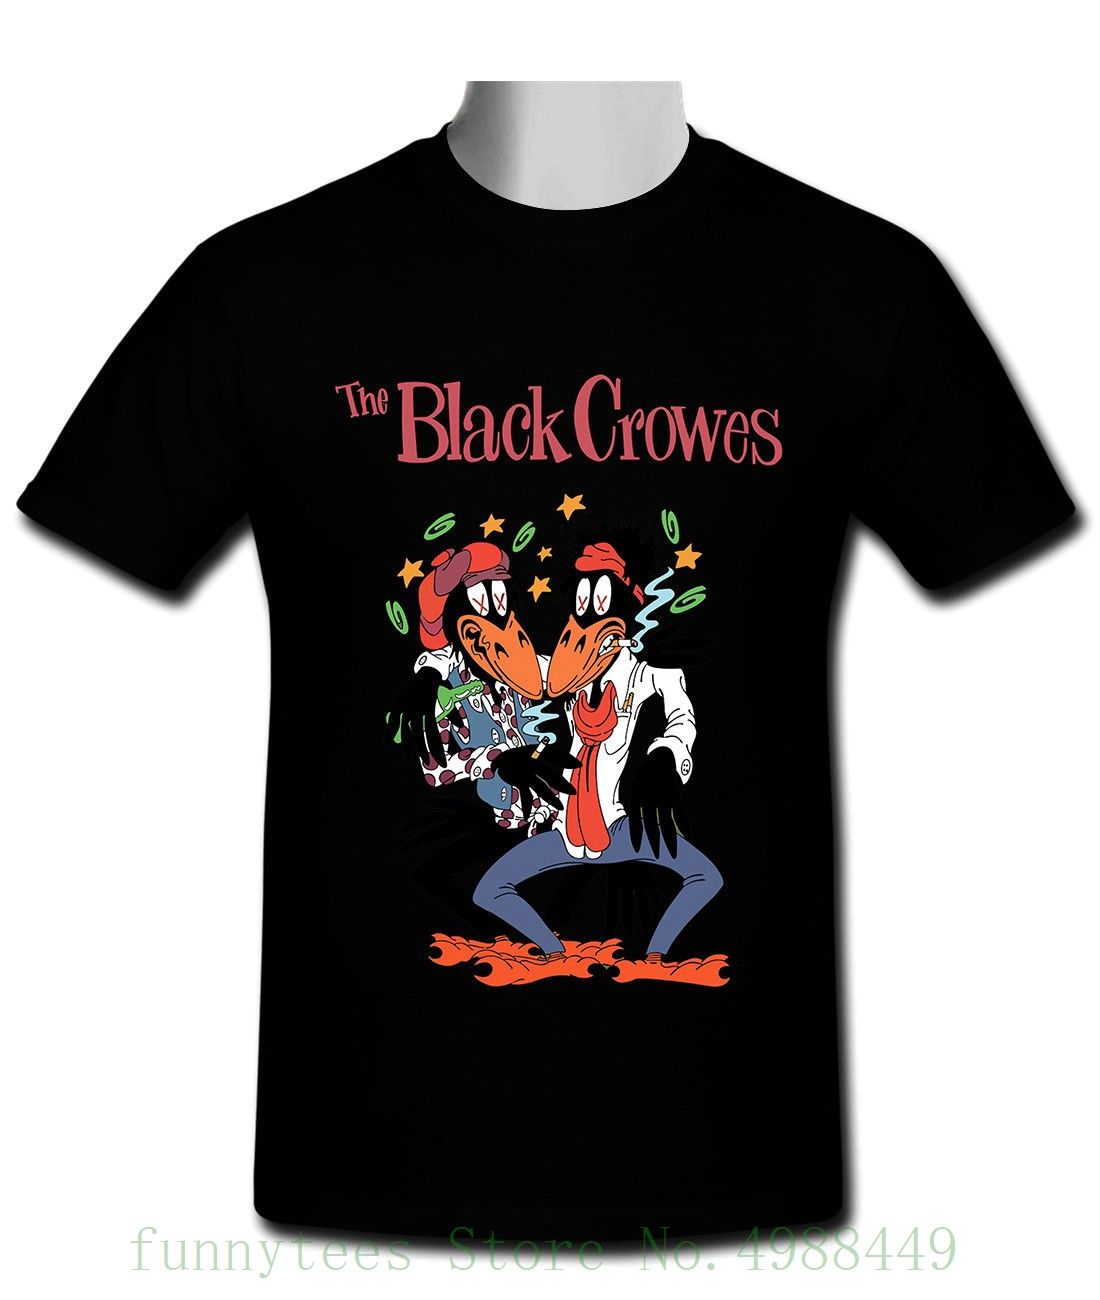 The Black Crowes Classic Black T Shirt Size S To 2xl T Shirt Cartoon Funny Fashion image